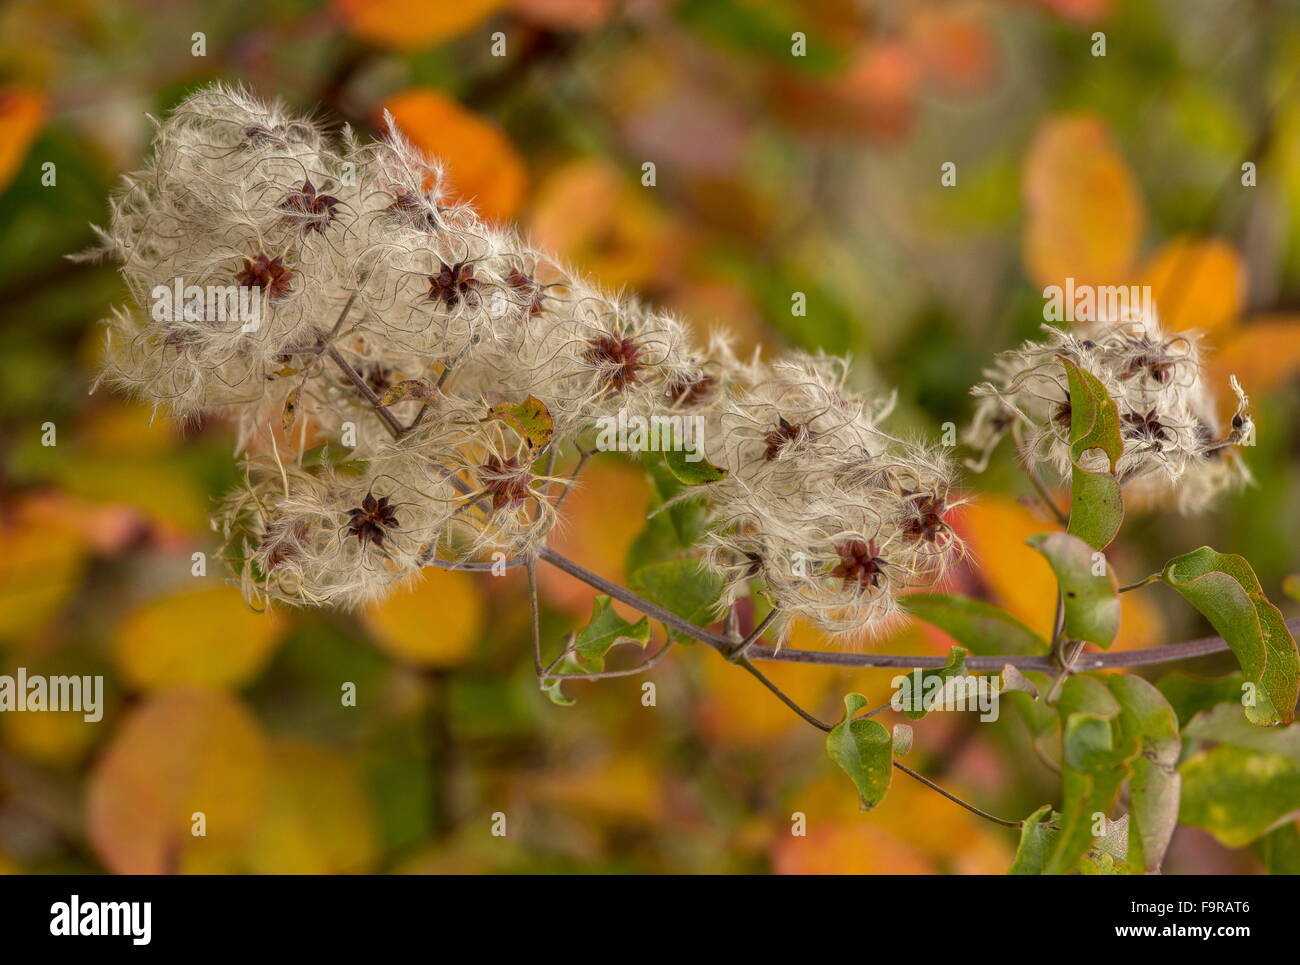 Traveller's-joy, Clematis vitalba in autumn colour and fruits, north Greece. Stock Photo